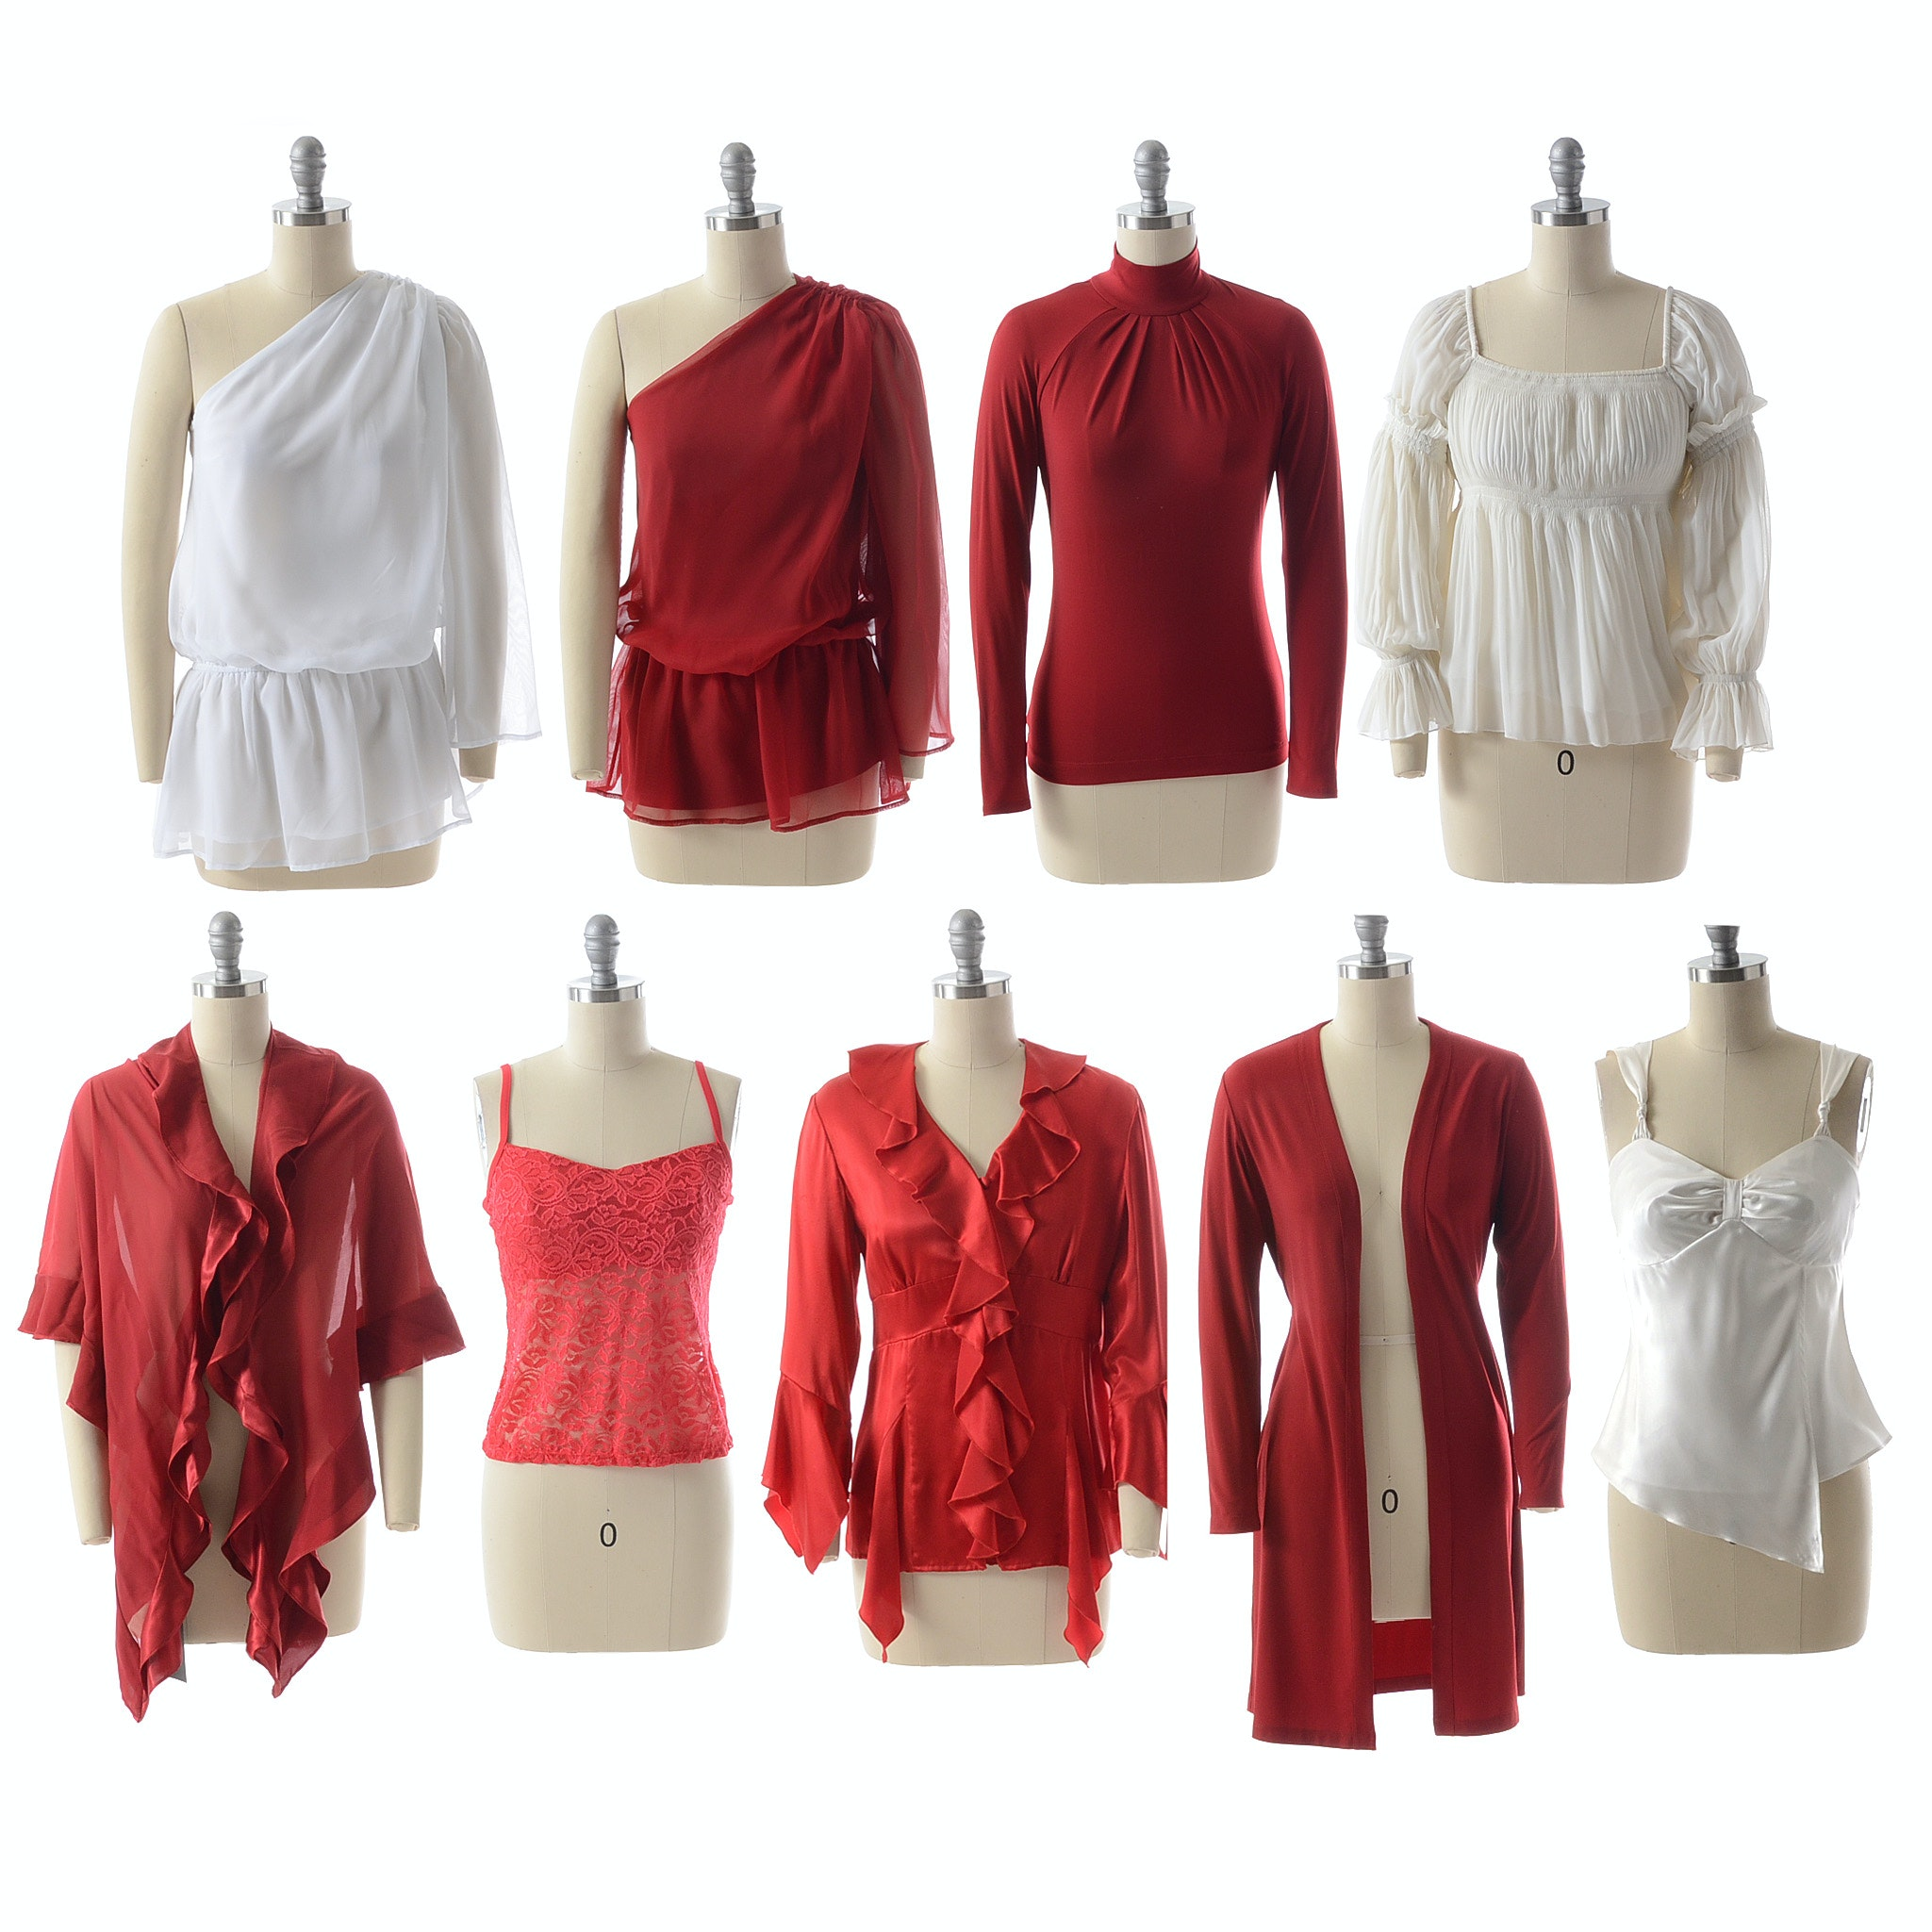 Susan Lucci Brand Red and White Tops